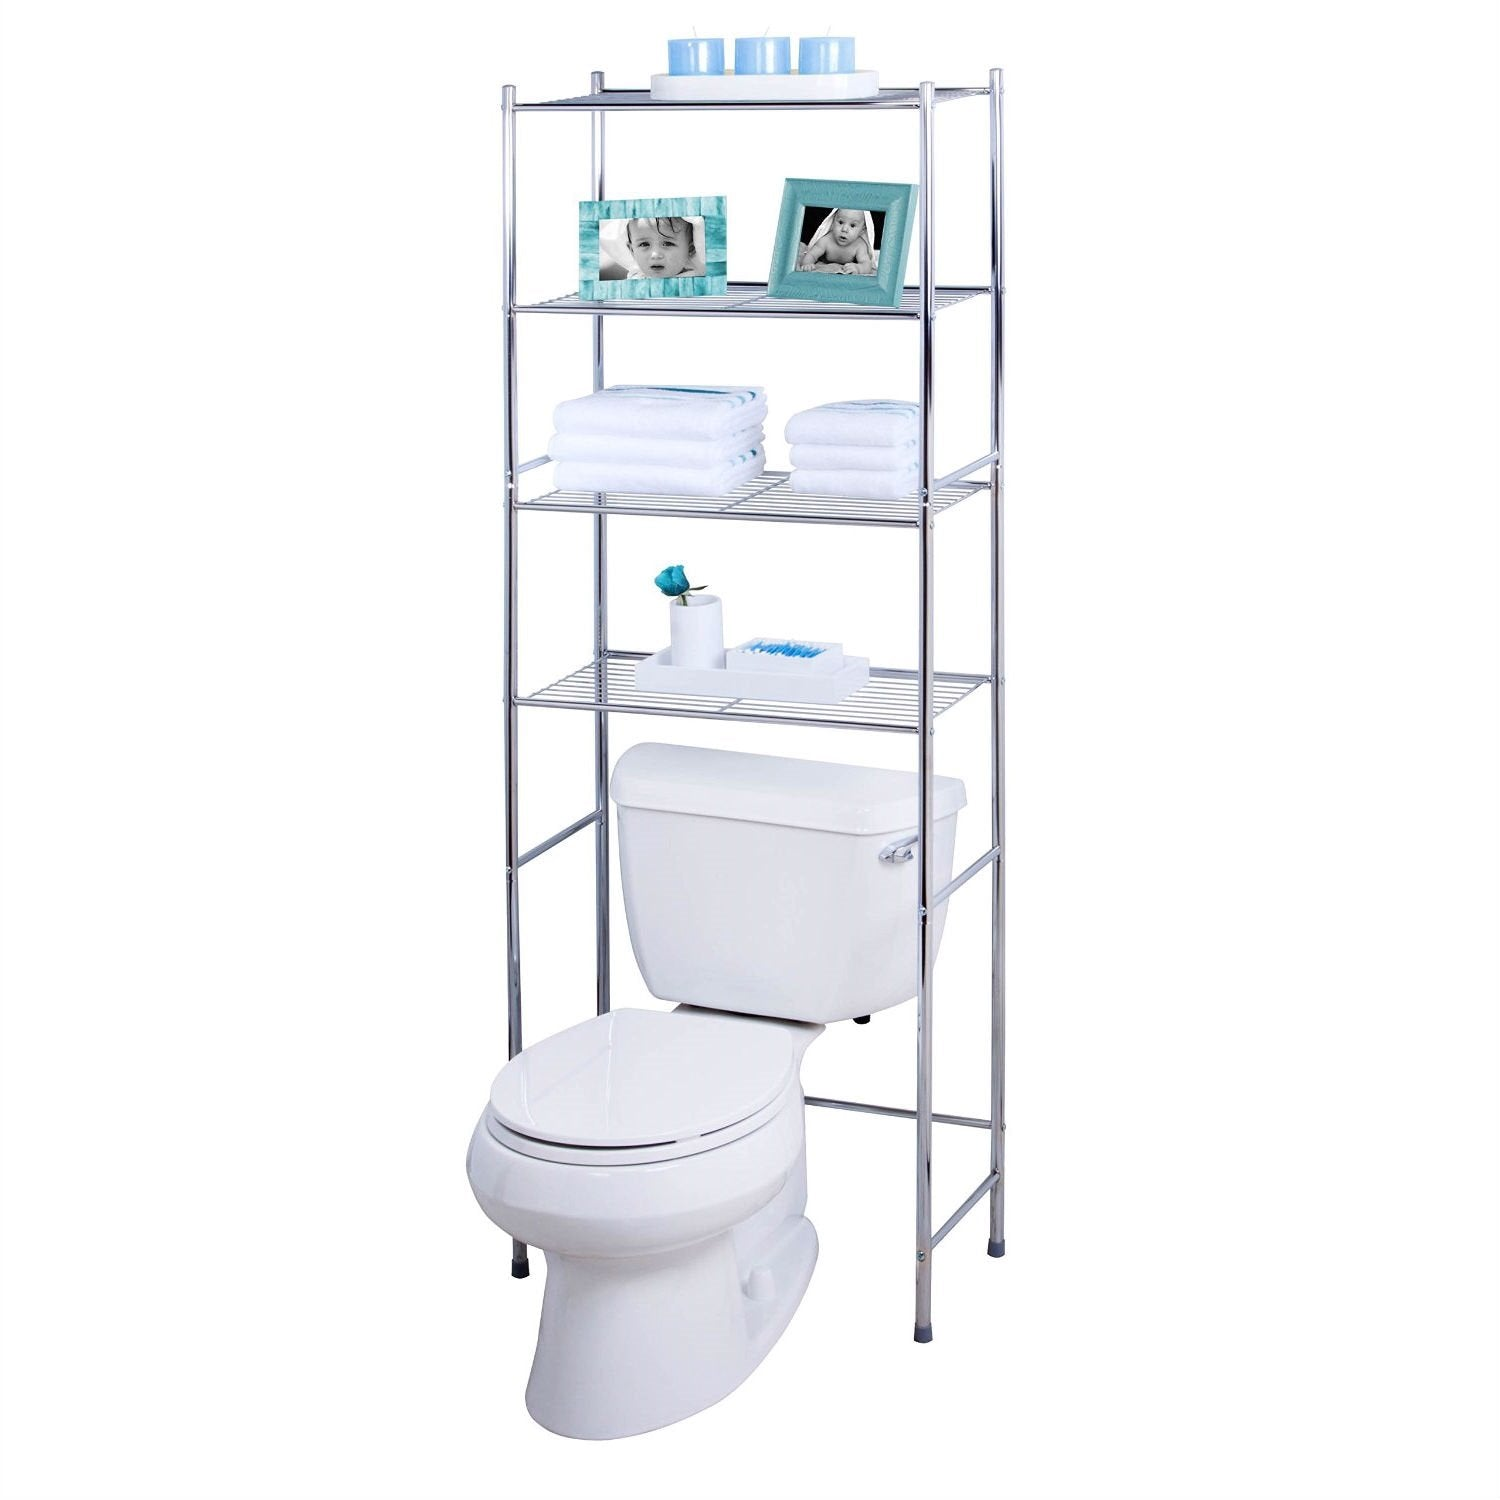 Bathroom Linen Tower Over the Toilet Shelving Unit in Chrome Metal Finish